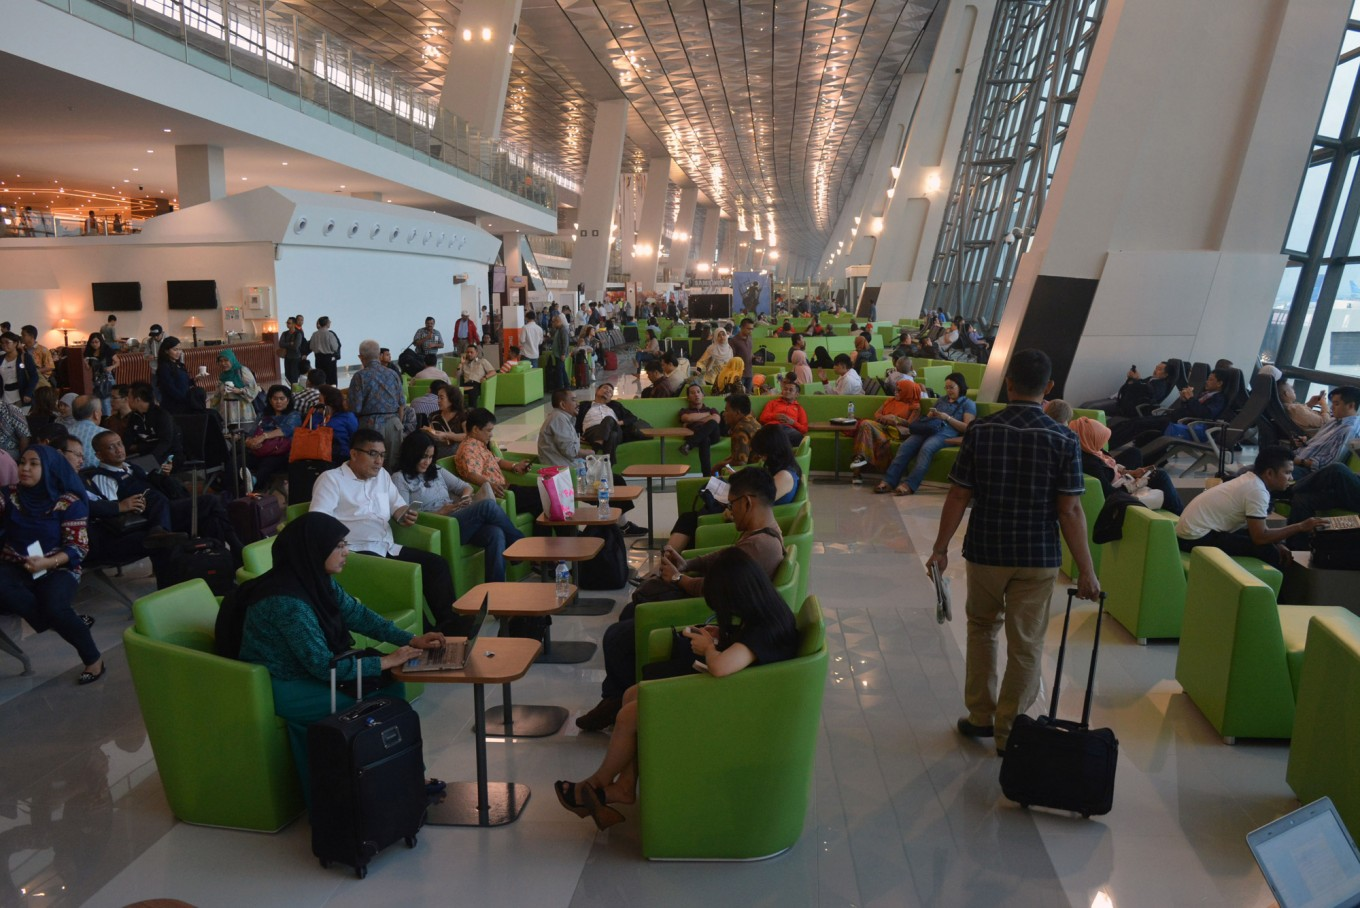 Check-in system at Soekarno-Hatta's Terminal 3 returns to normal after system goes down